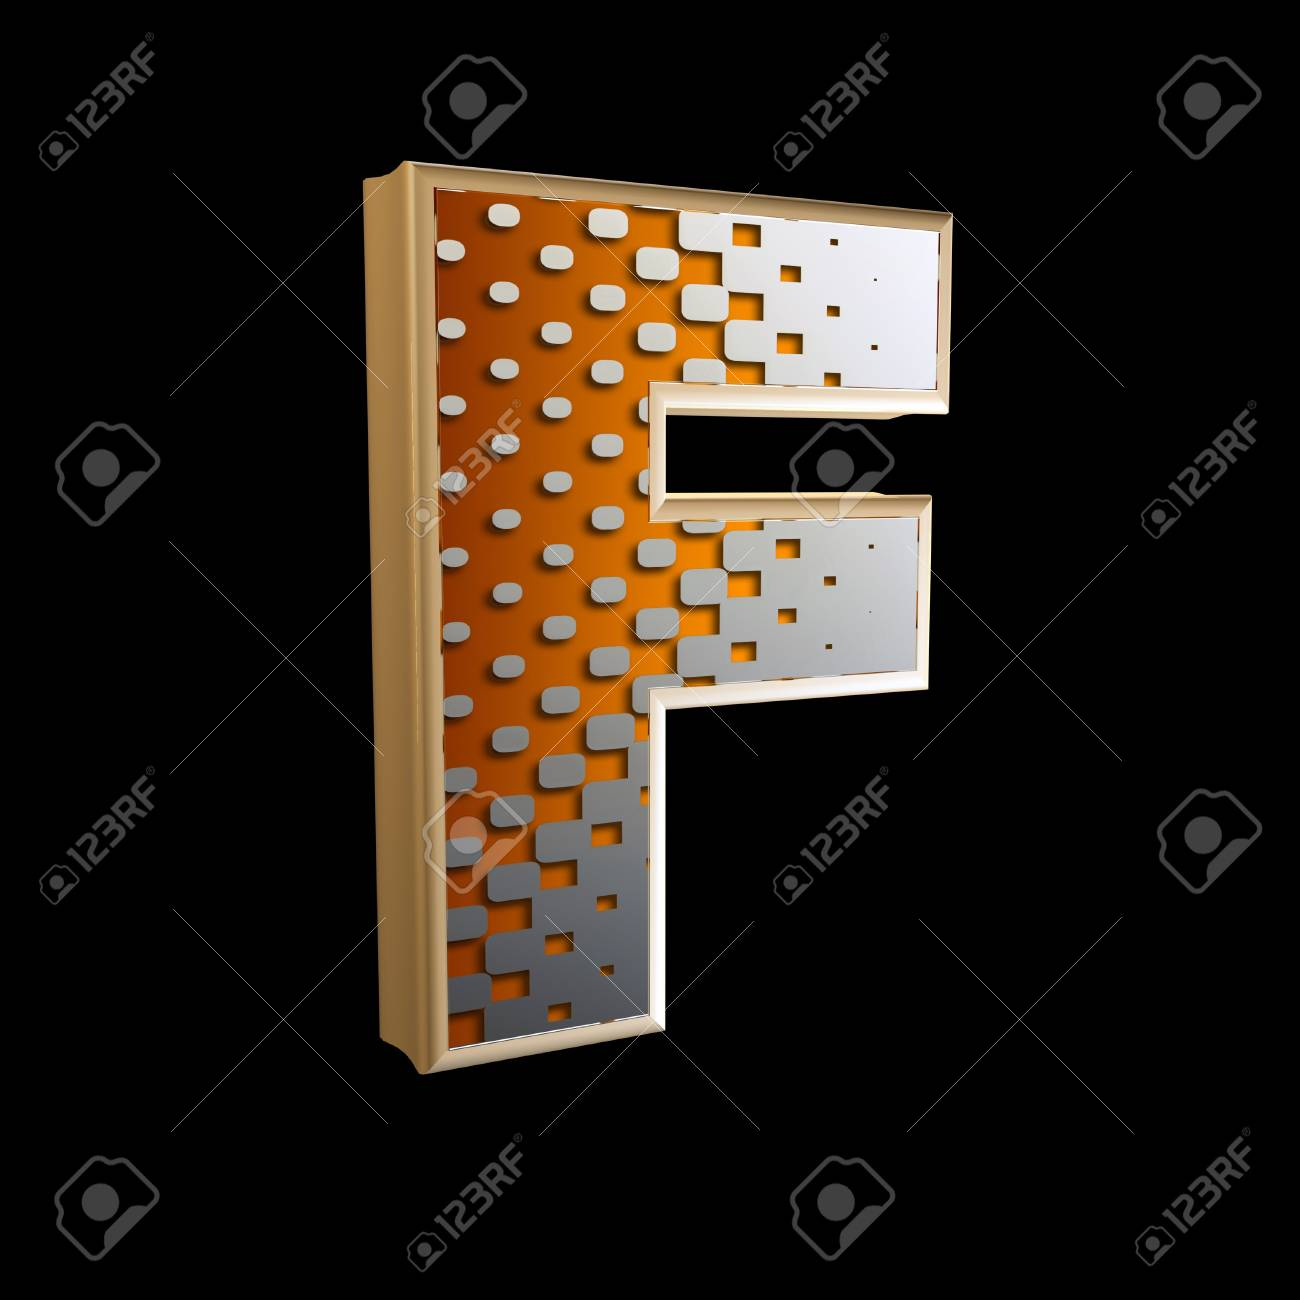 3d abstract letter with modern halftone pattern - F Stock Photo - 15212853